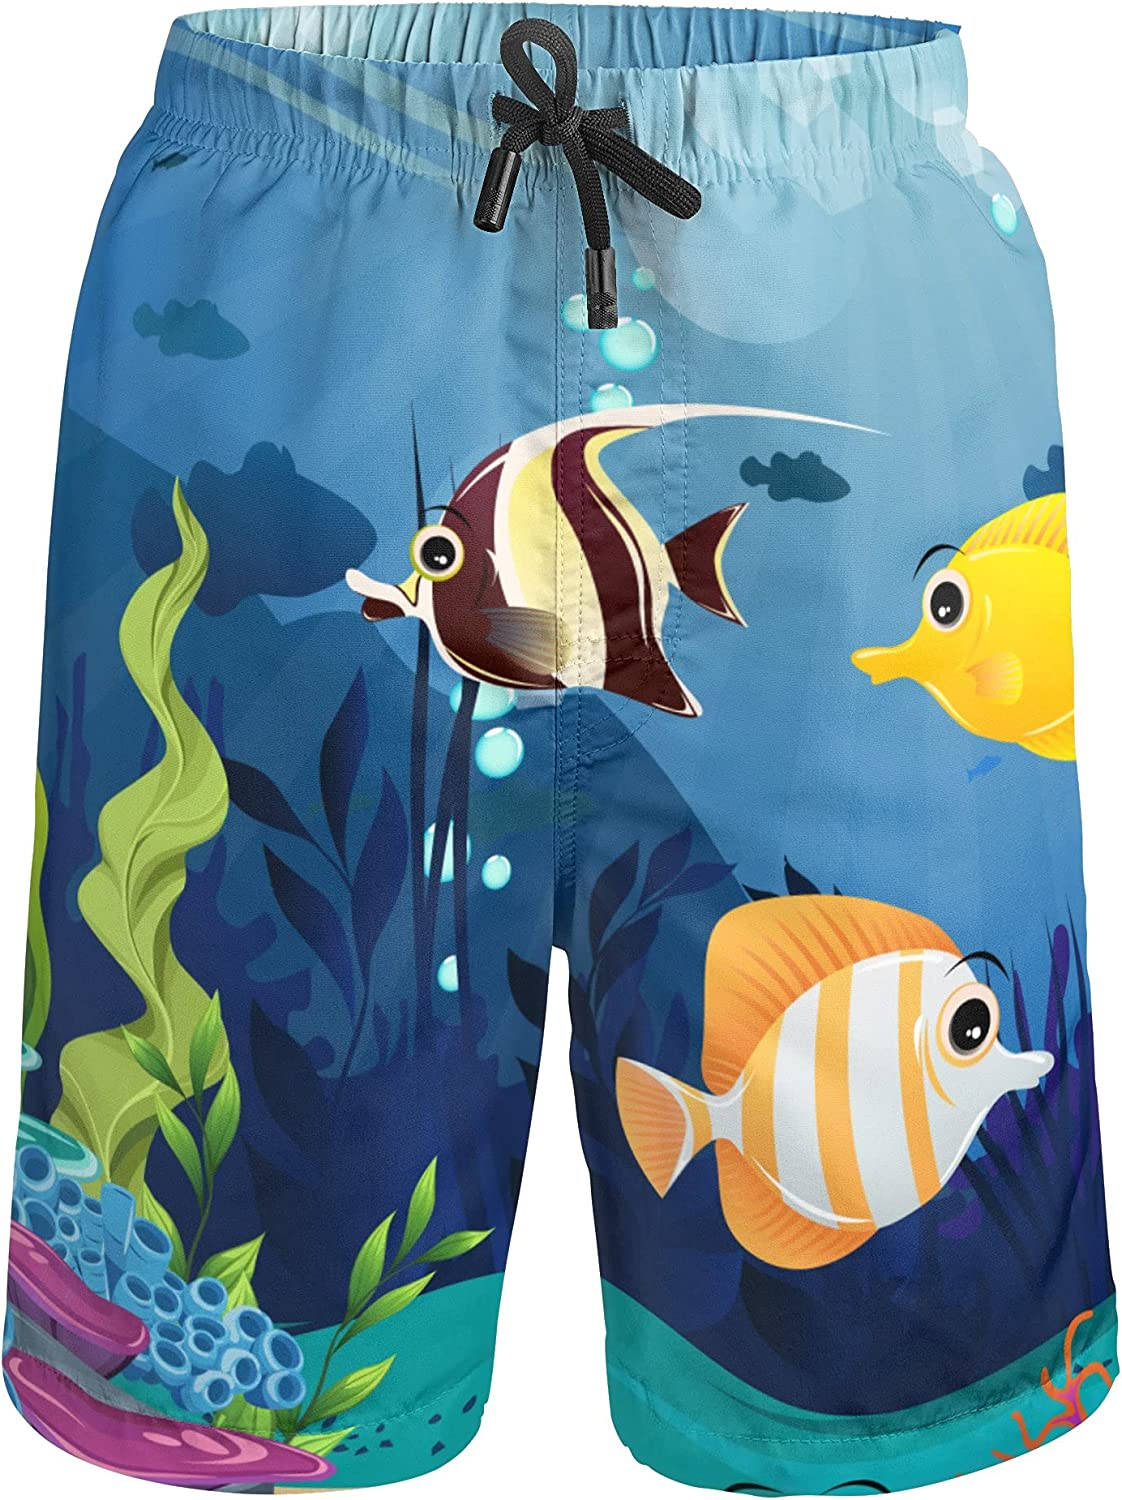 YAGUZHUI Boys Swim Trunks Drawsting Beach Surf Boards Shorts Swimsuits with Pockets Quick Dry 4T-16T